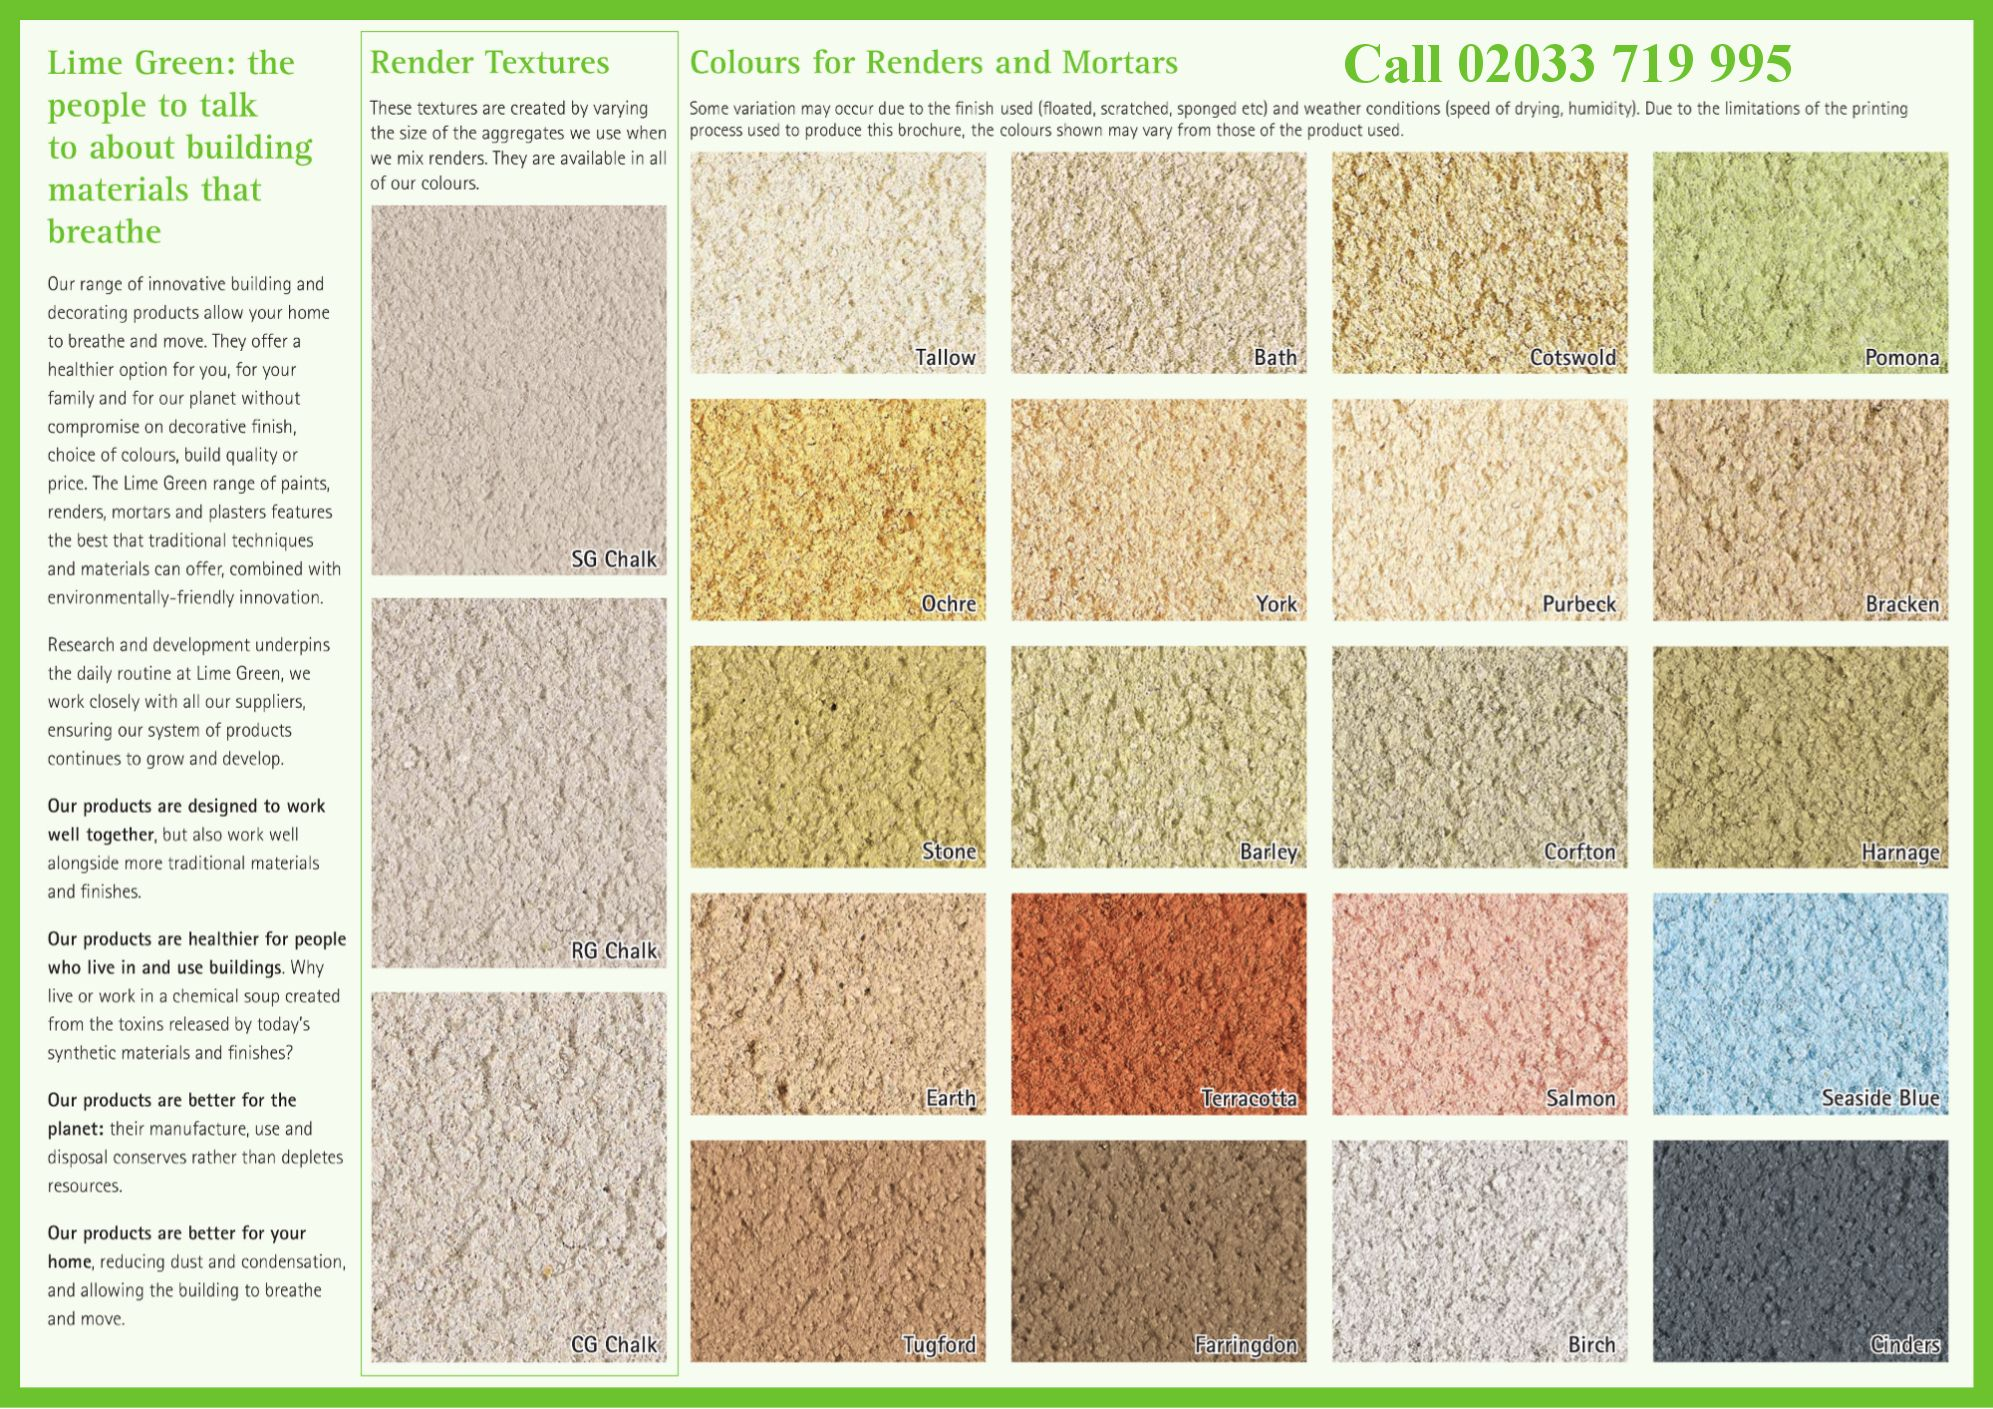 Mixed lime mortar london ready mixed lime mortar london geenschuldenfo Choice Image